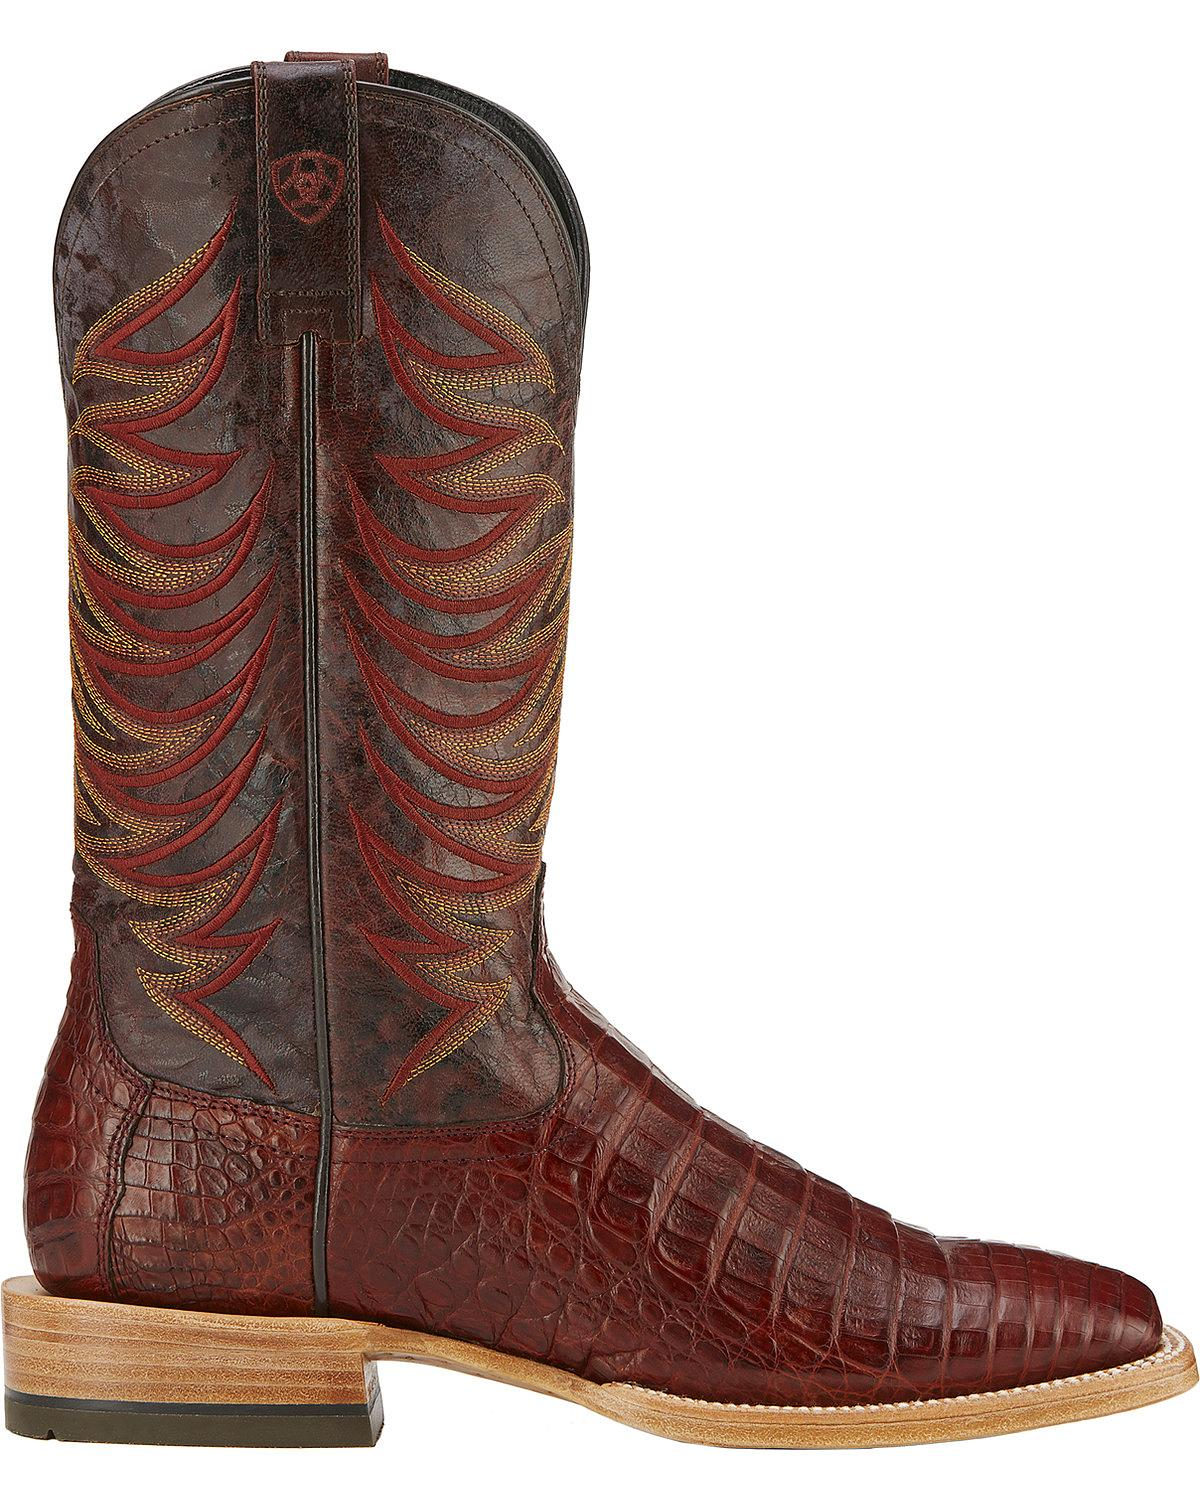 Ariat Men's Fire Catcher Caiman Cowboy Boot Square Toe - Cinnamon